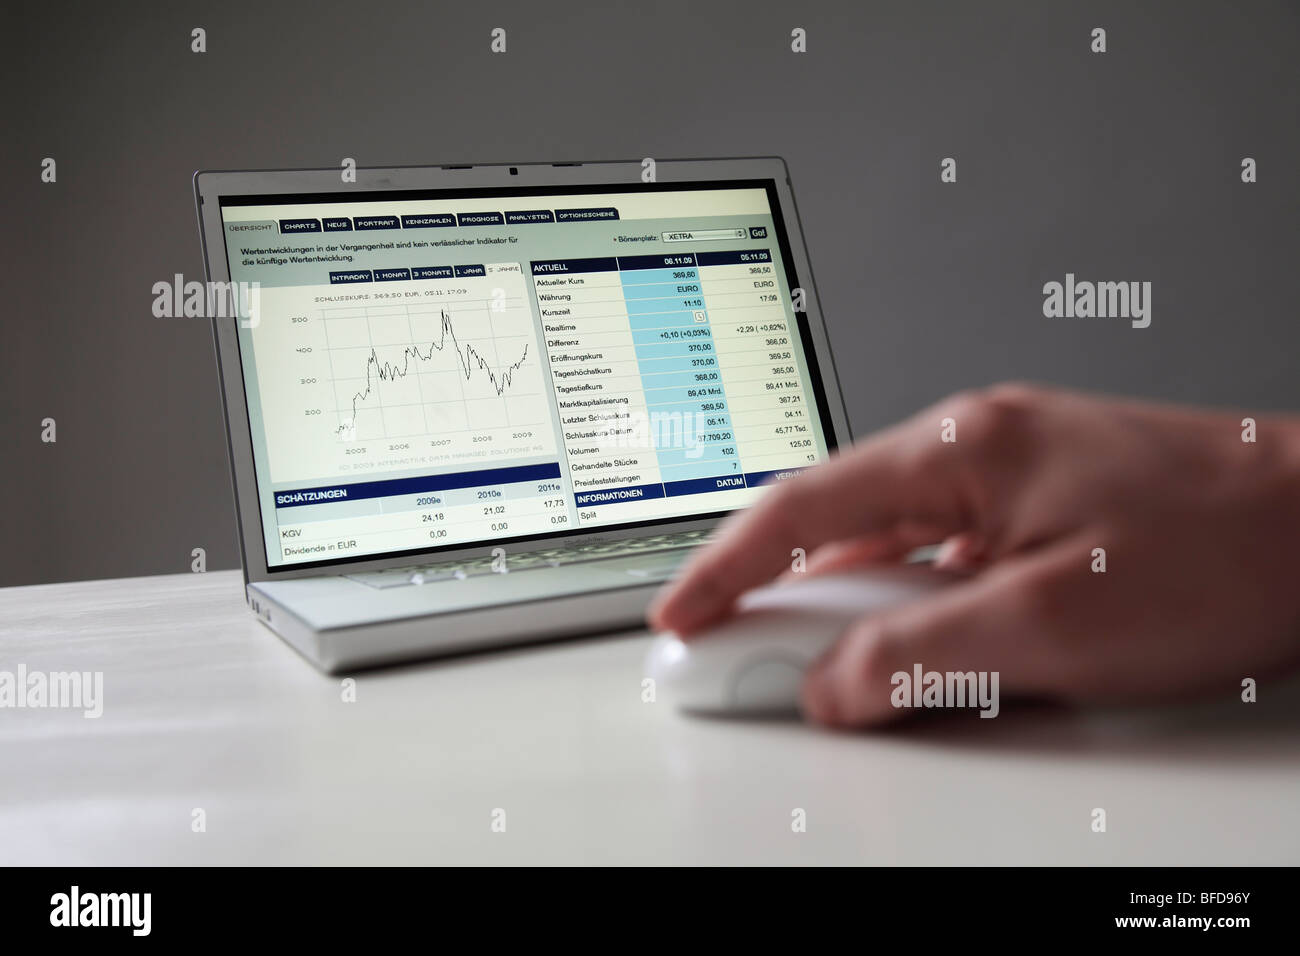 Stock chart with infos on computer screen. Symbol: online brokerage - Stock Image